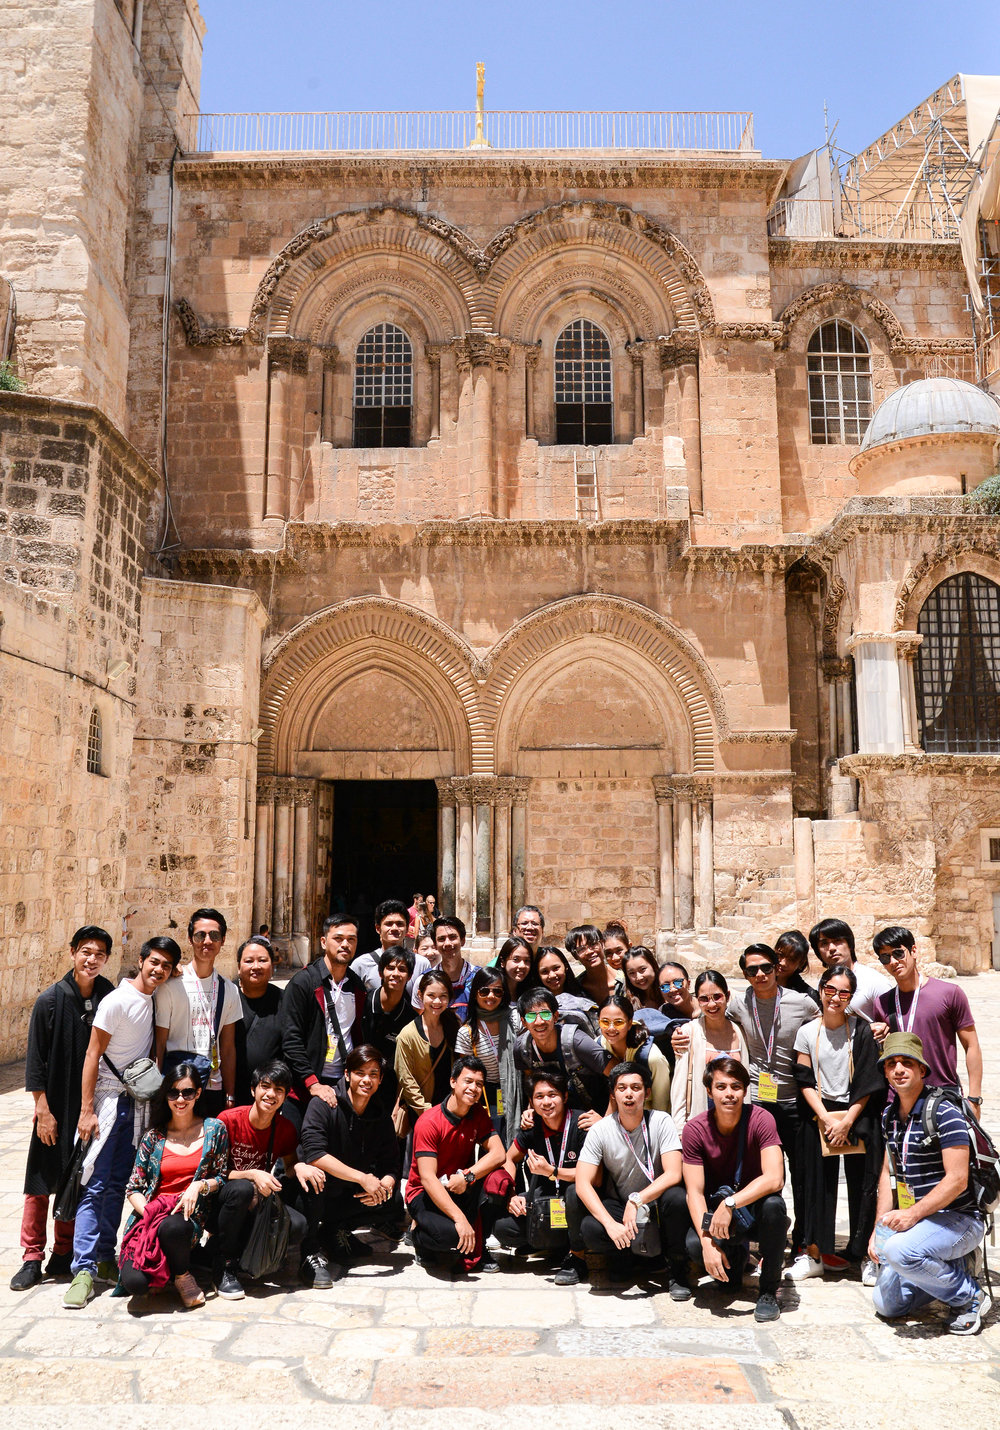 The trip was doubly special as the group was also able to visit some of the most revered spots in the Holy Land. Photo by Mark Sumaylo